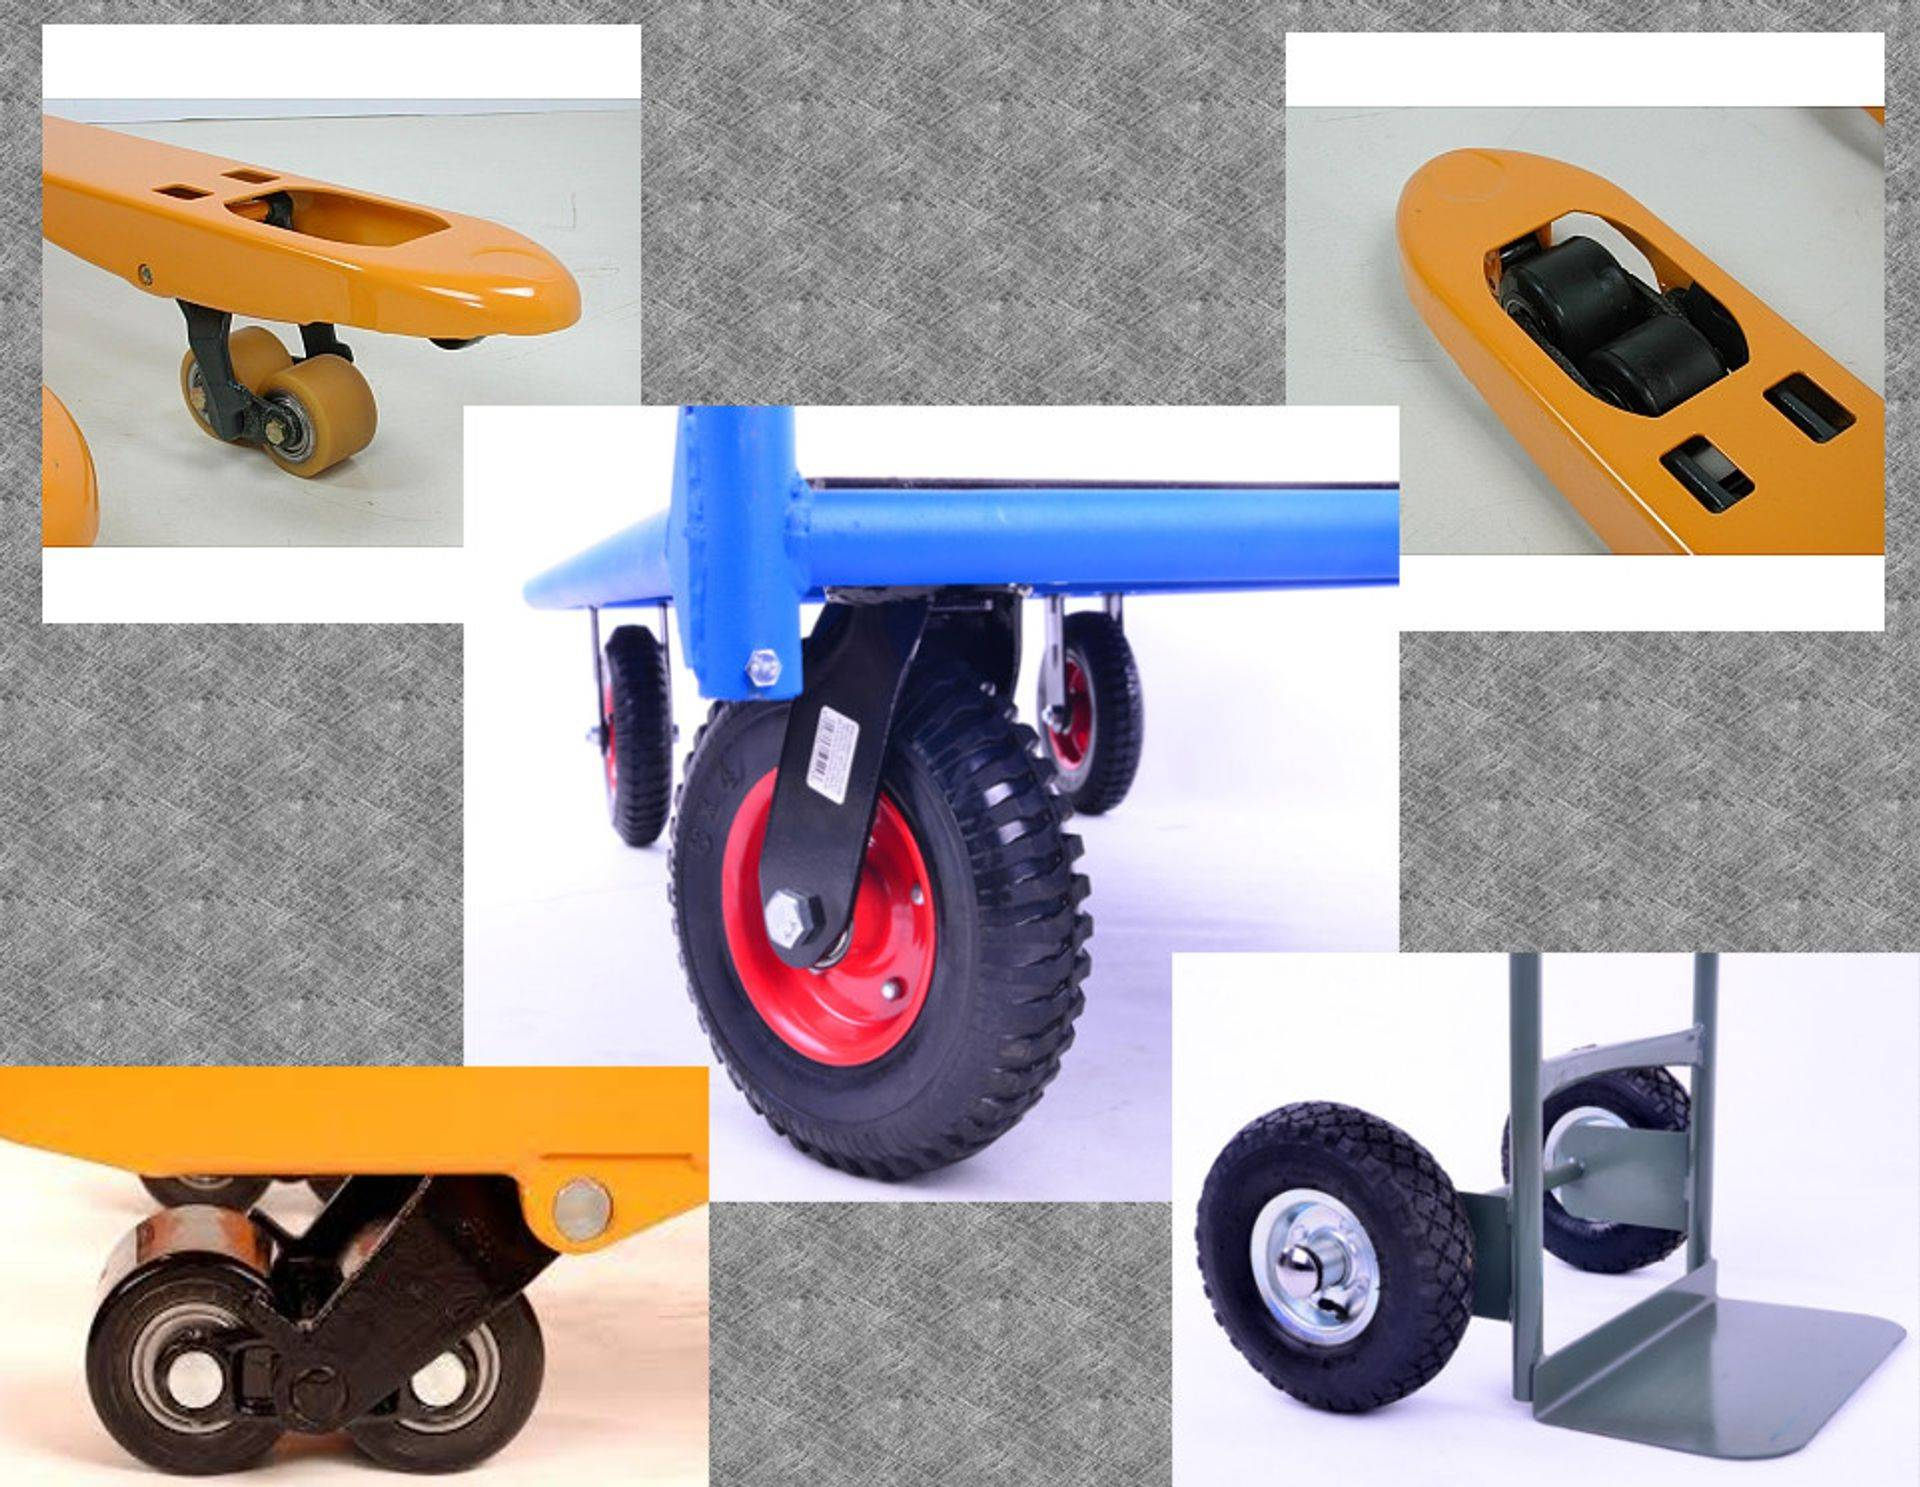 wheels and rollers for lifting equipment